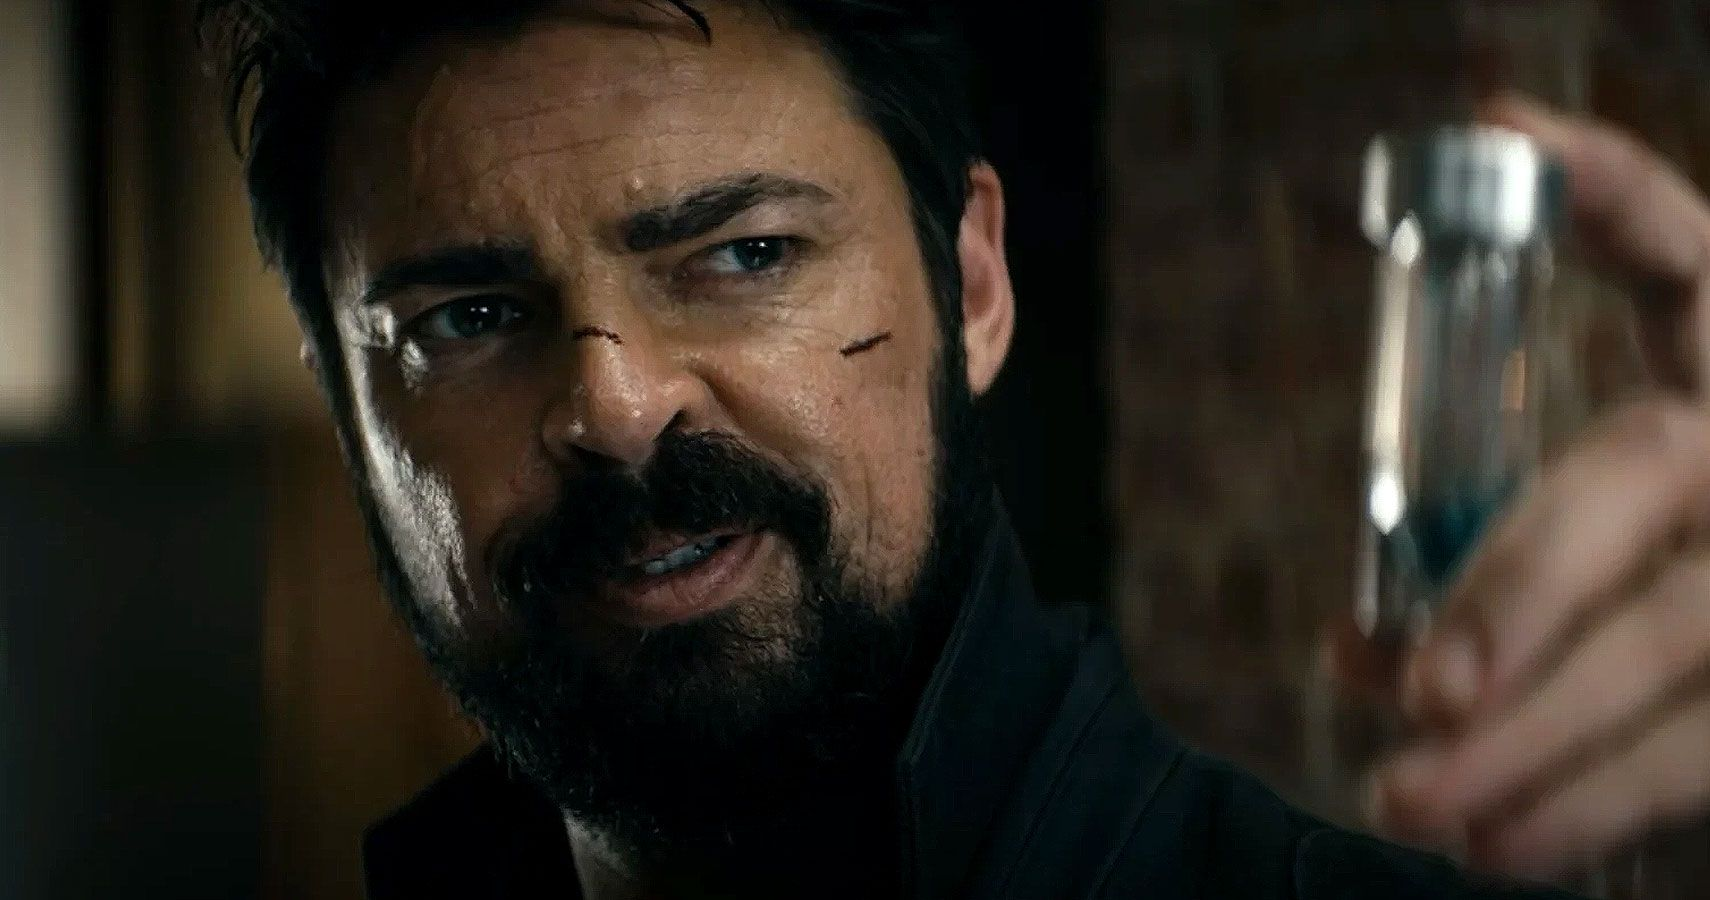 Urban is currently starring as Billy the Butcher in Amazon's bloody superhero franchise The Boys.